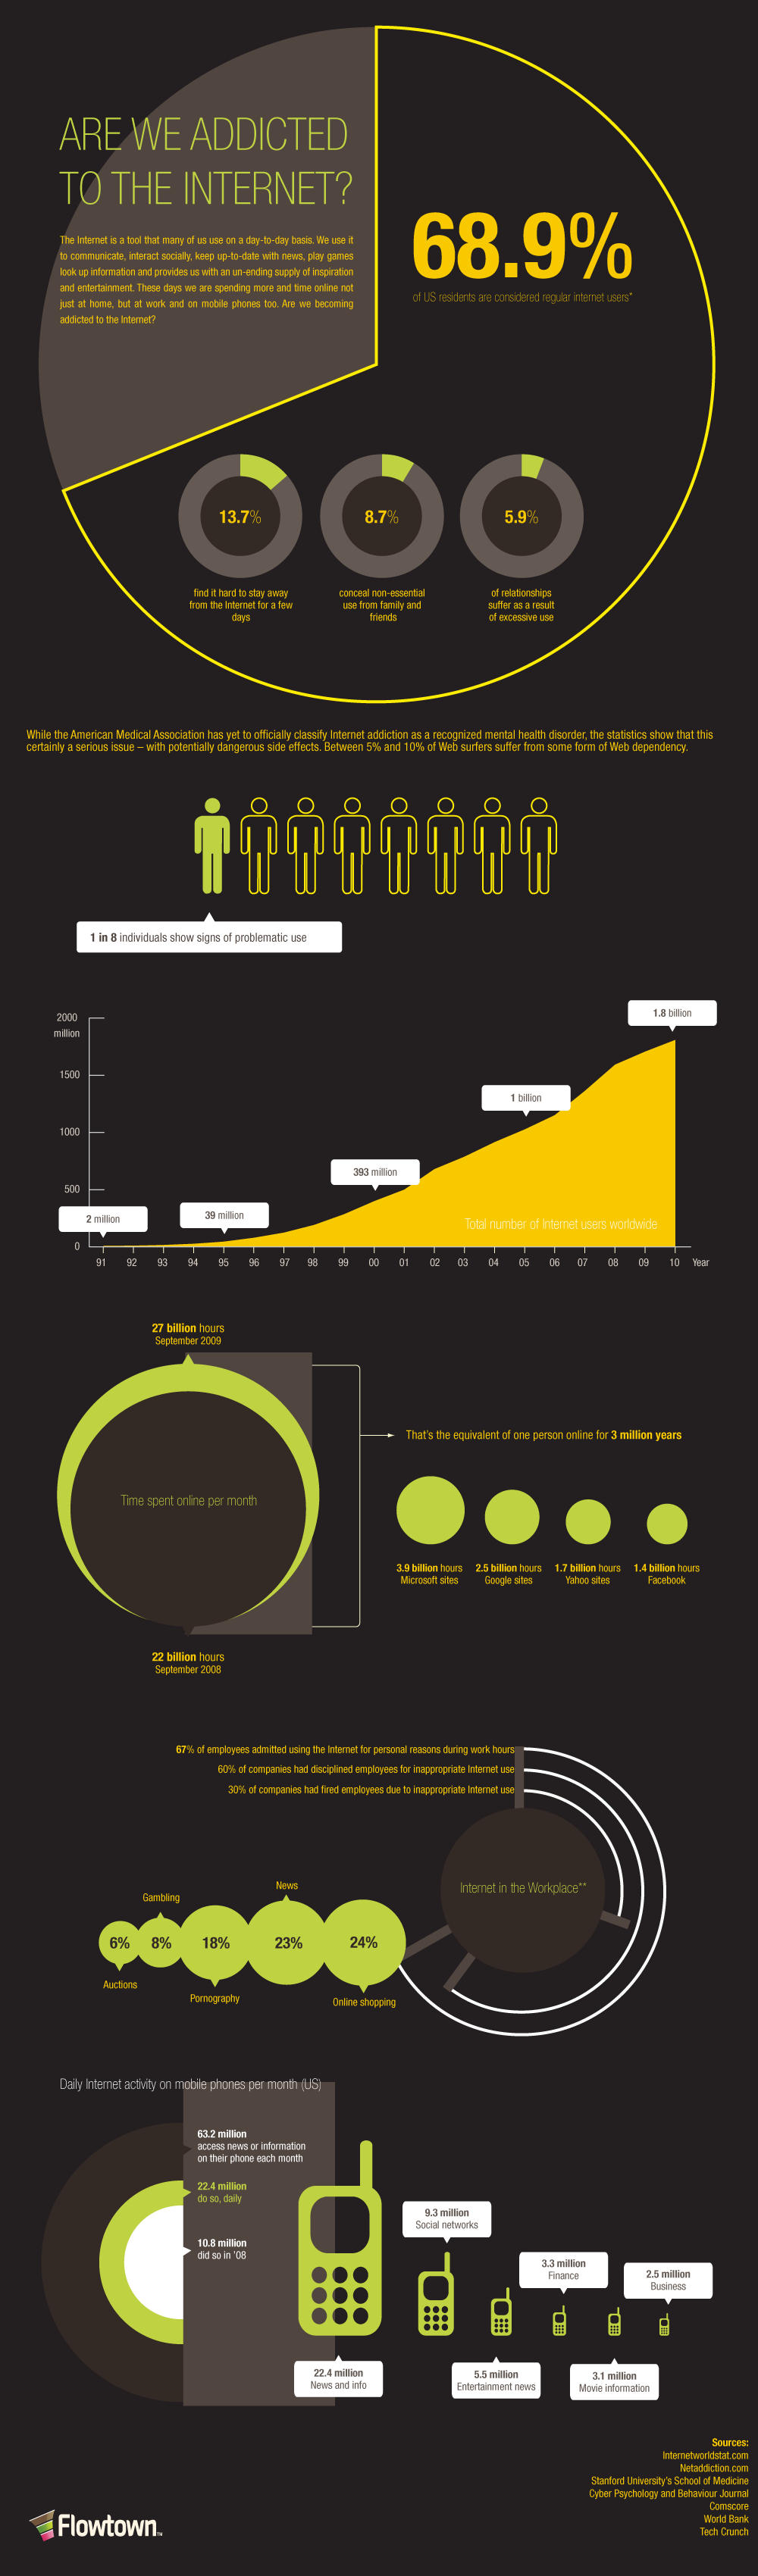 Are addicted to the internet? (Click to enlarge)